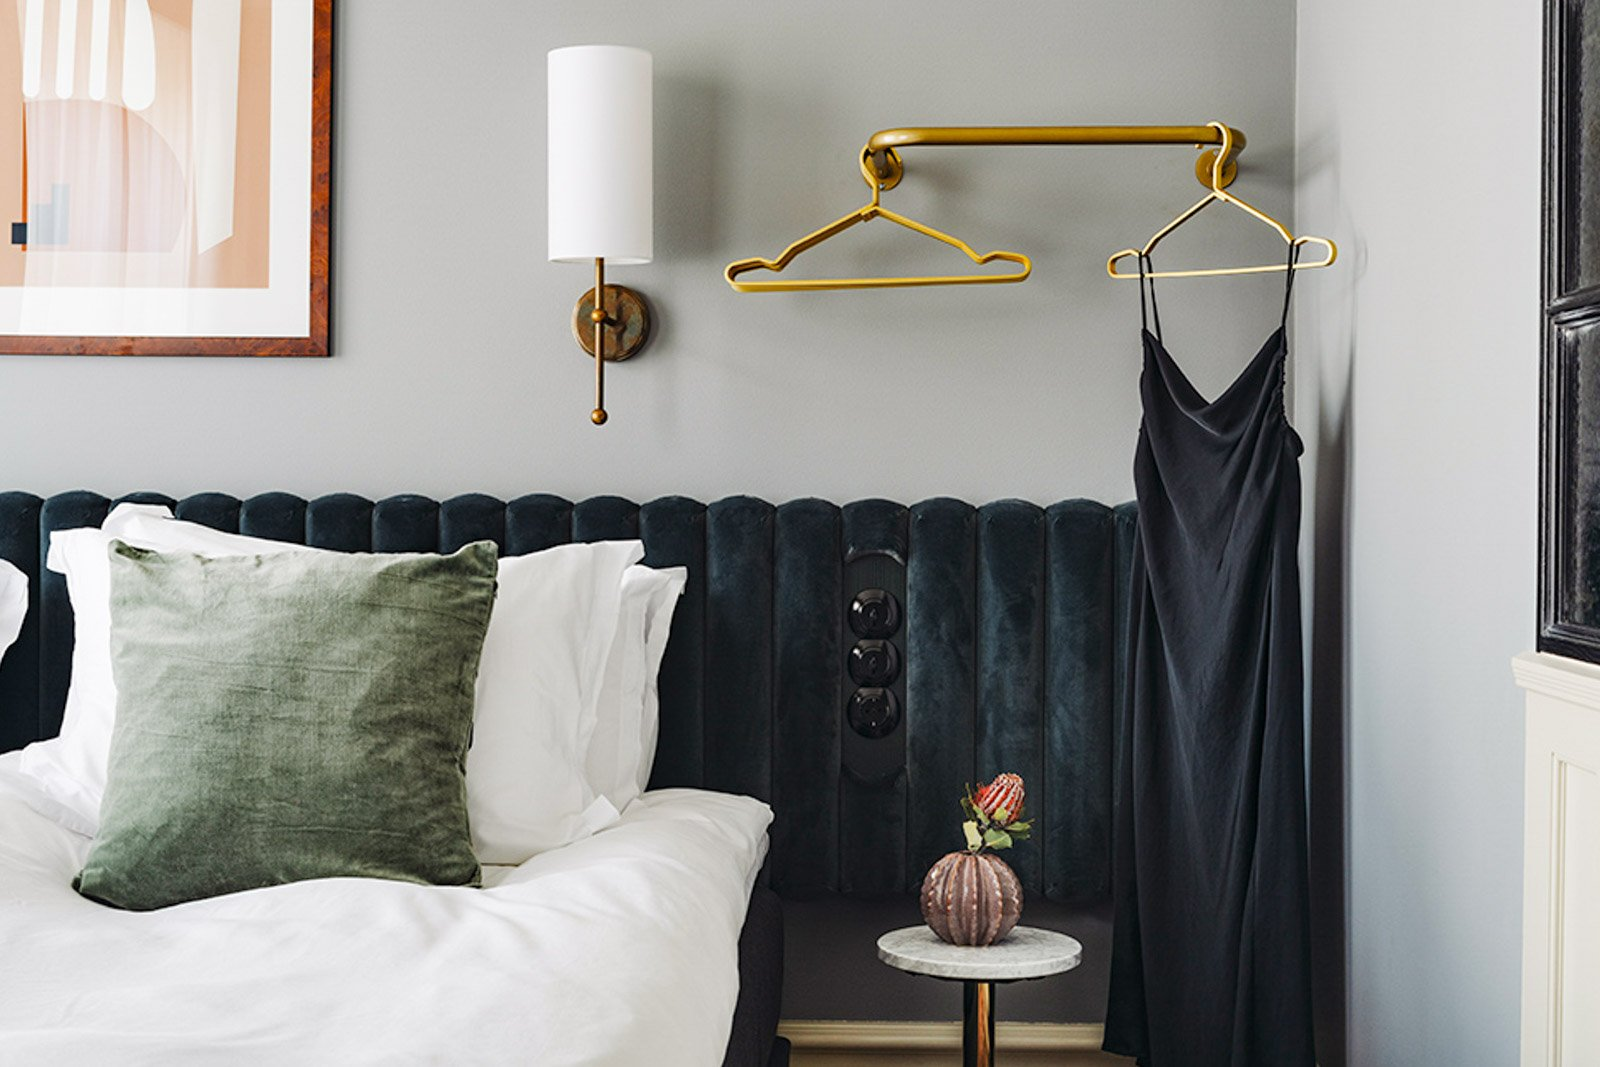 Boutique Swedish Hotel Hosts a Selection of our Decorative Hotel Lights